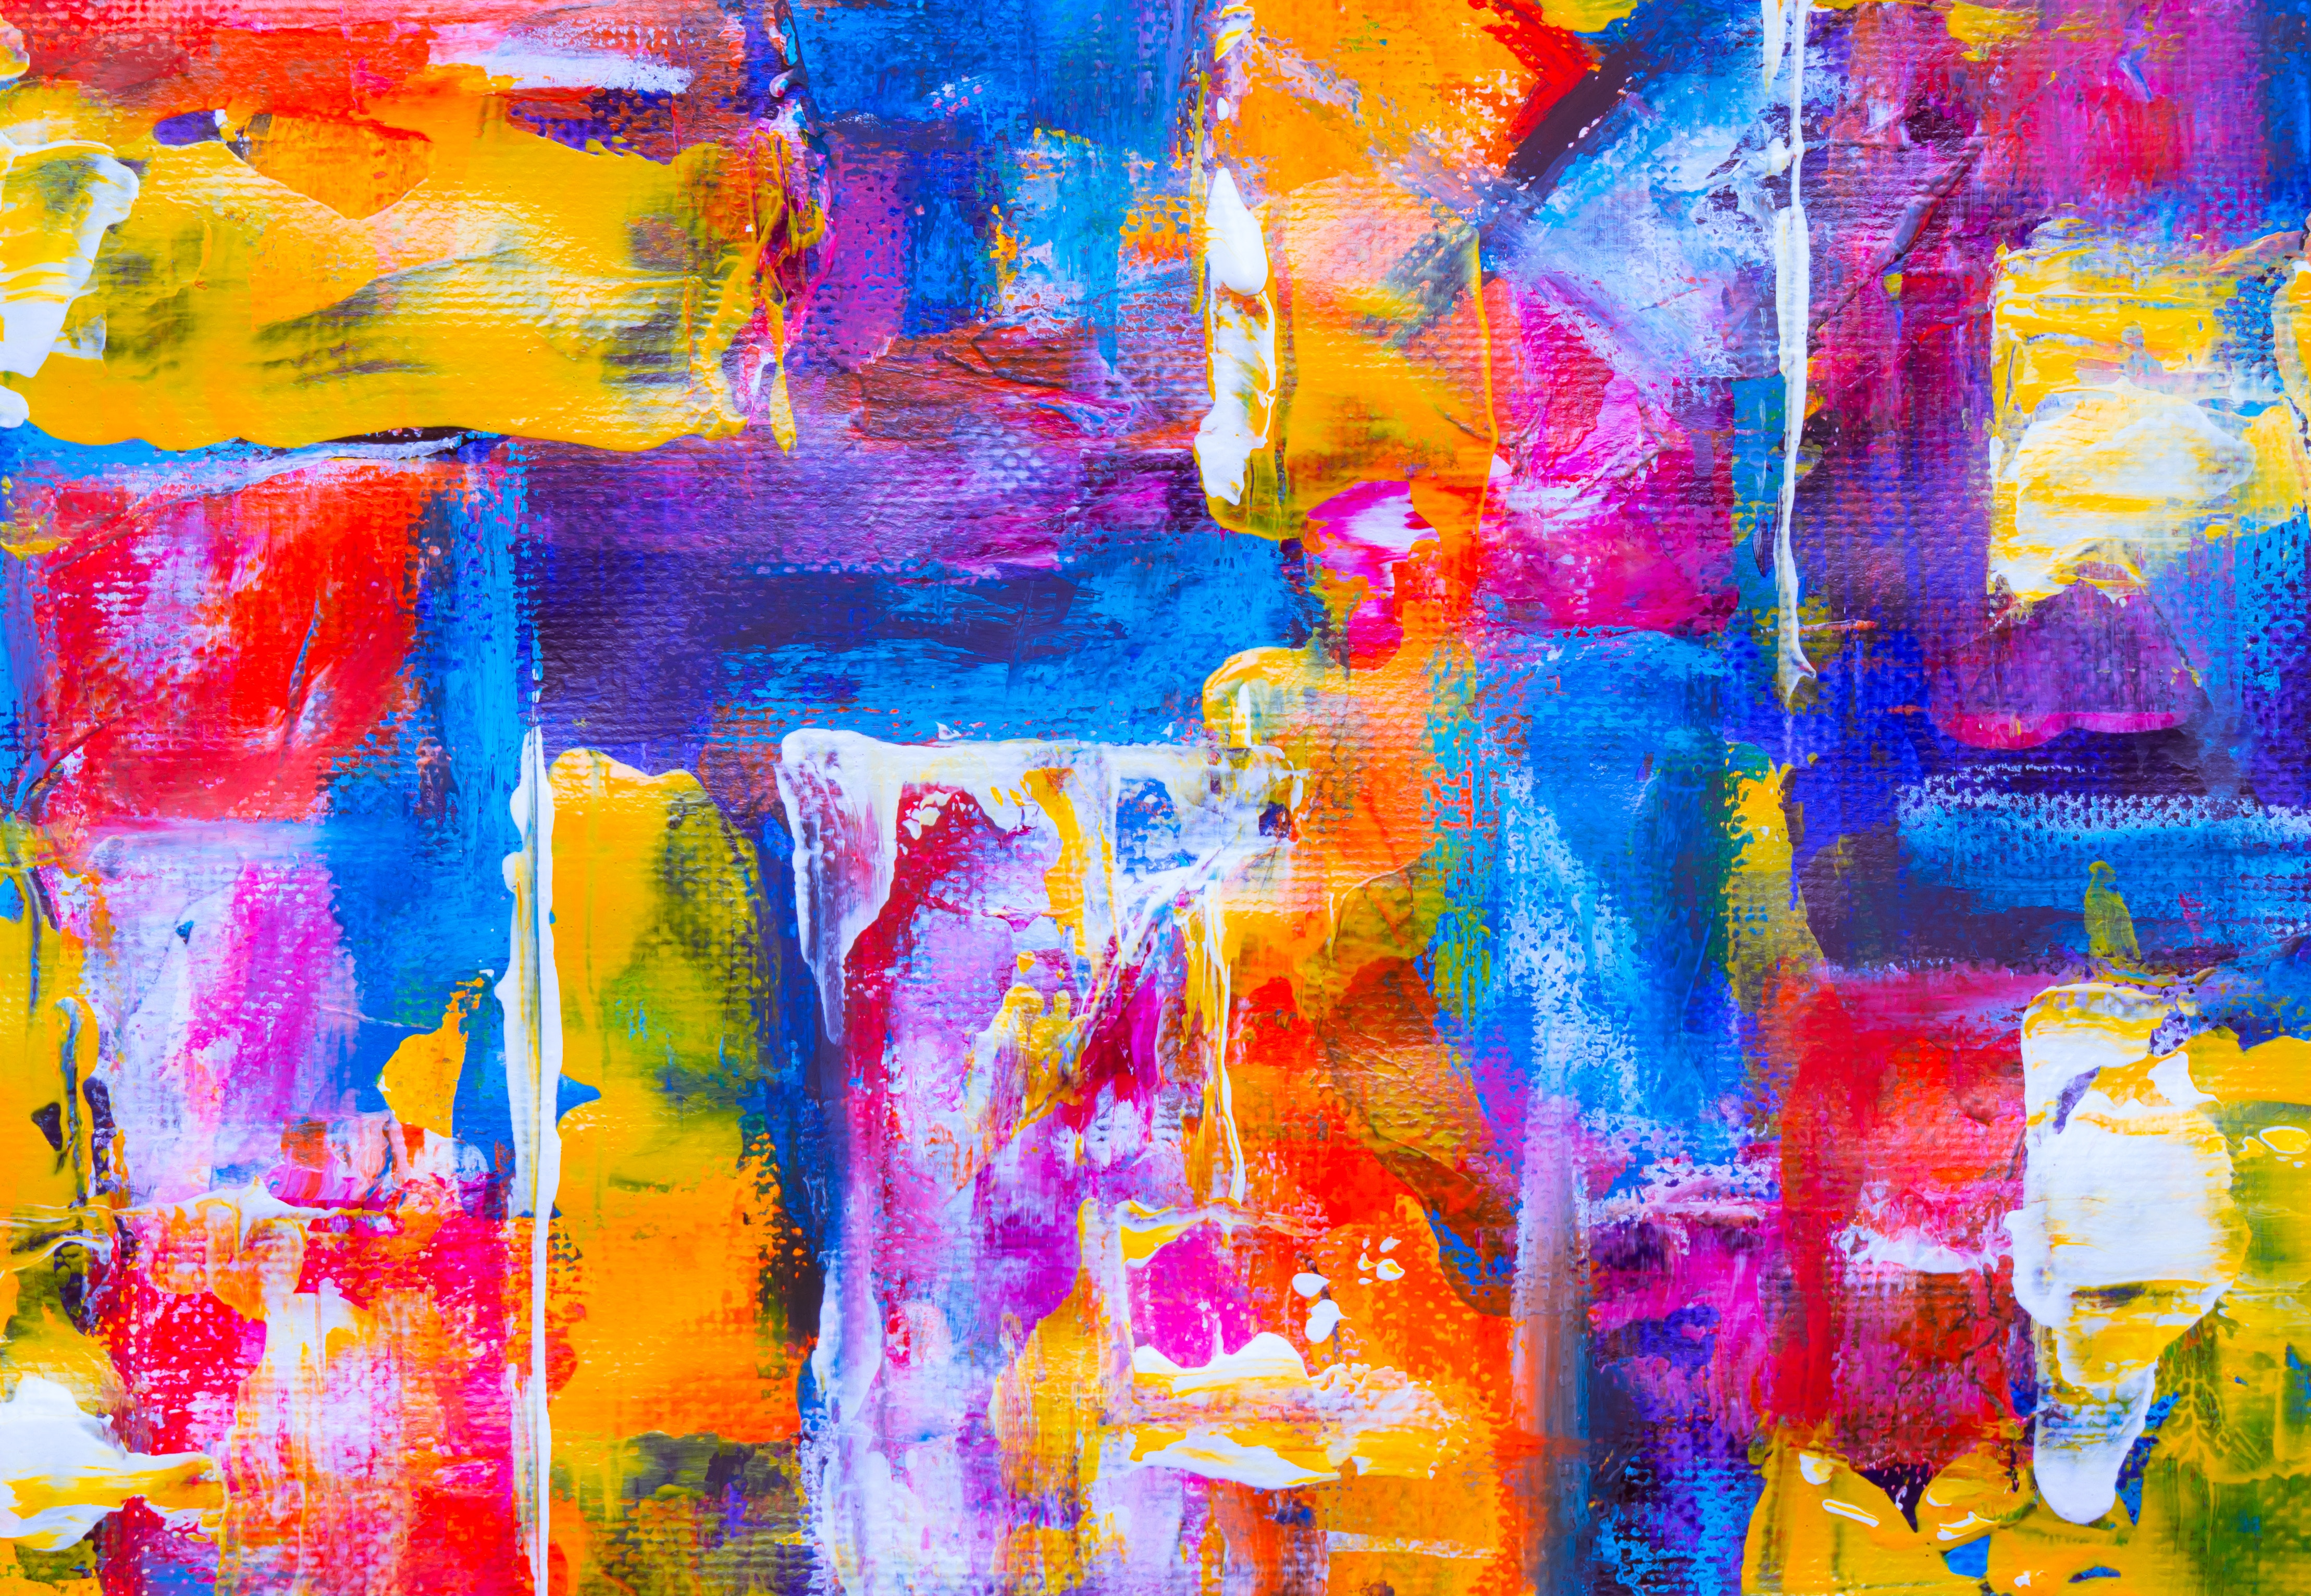 54326 download wallpaper Multicolored, Abstract, Motley, Paint, Stains, Spots, Canvas, Smears, Strokes screensavers and pictures for free